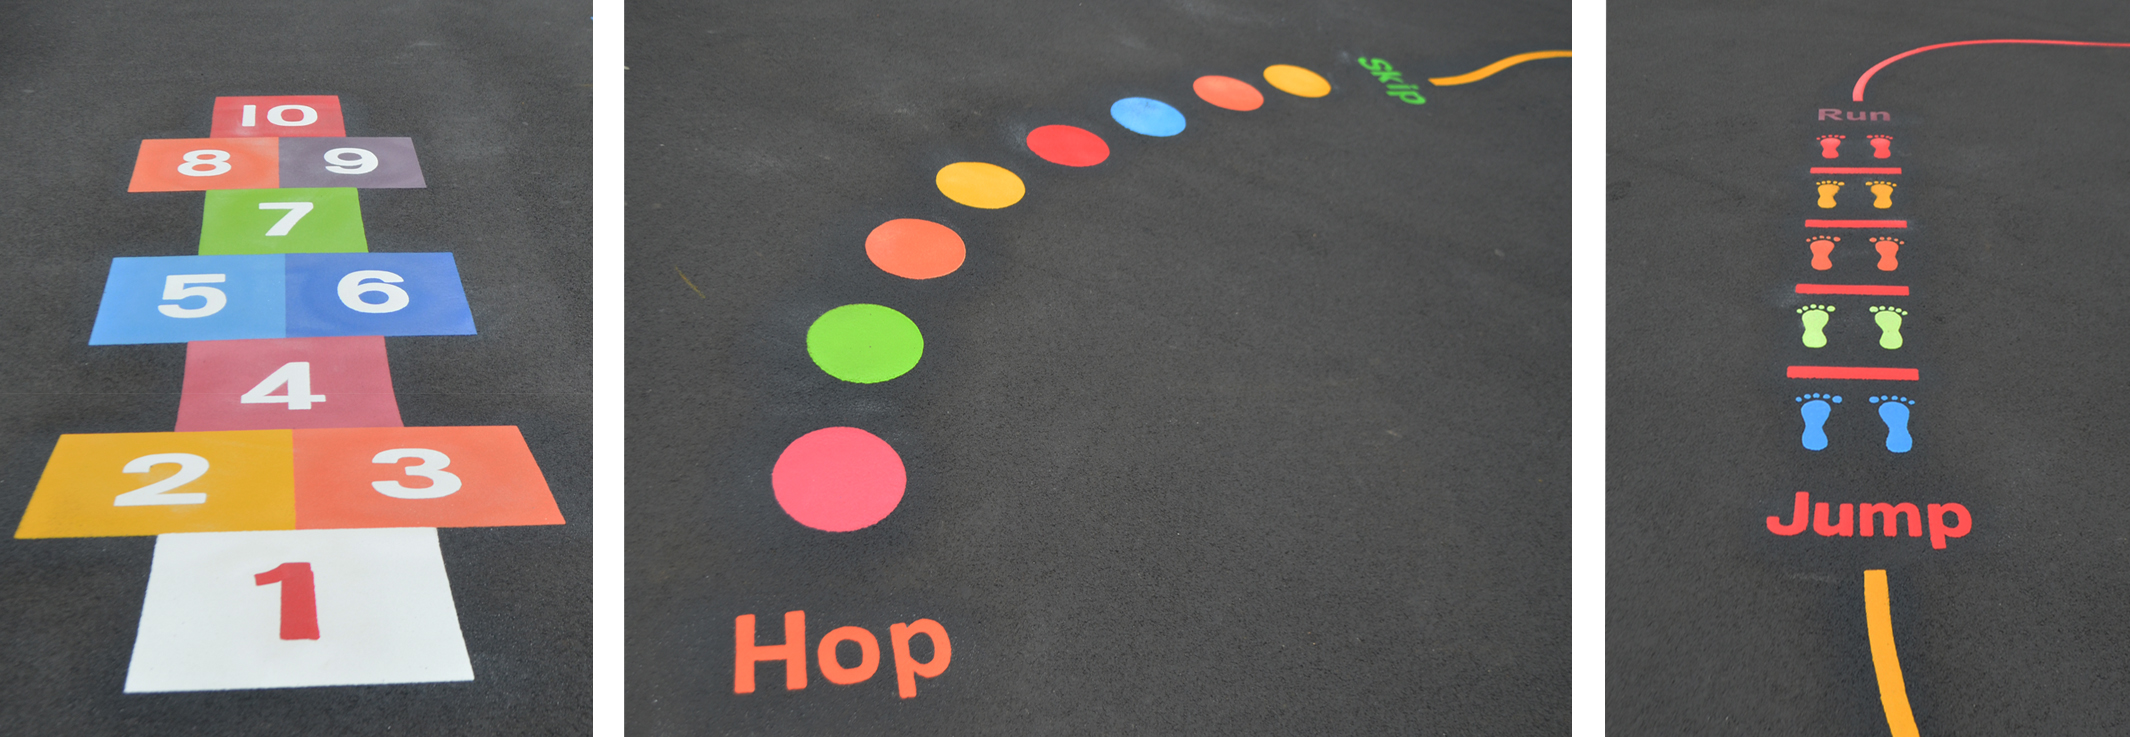 Playground markings Hopscotch, Activity trail